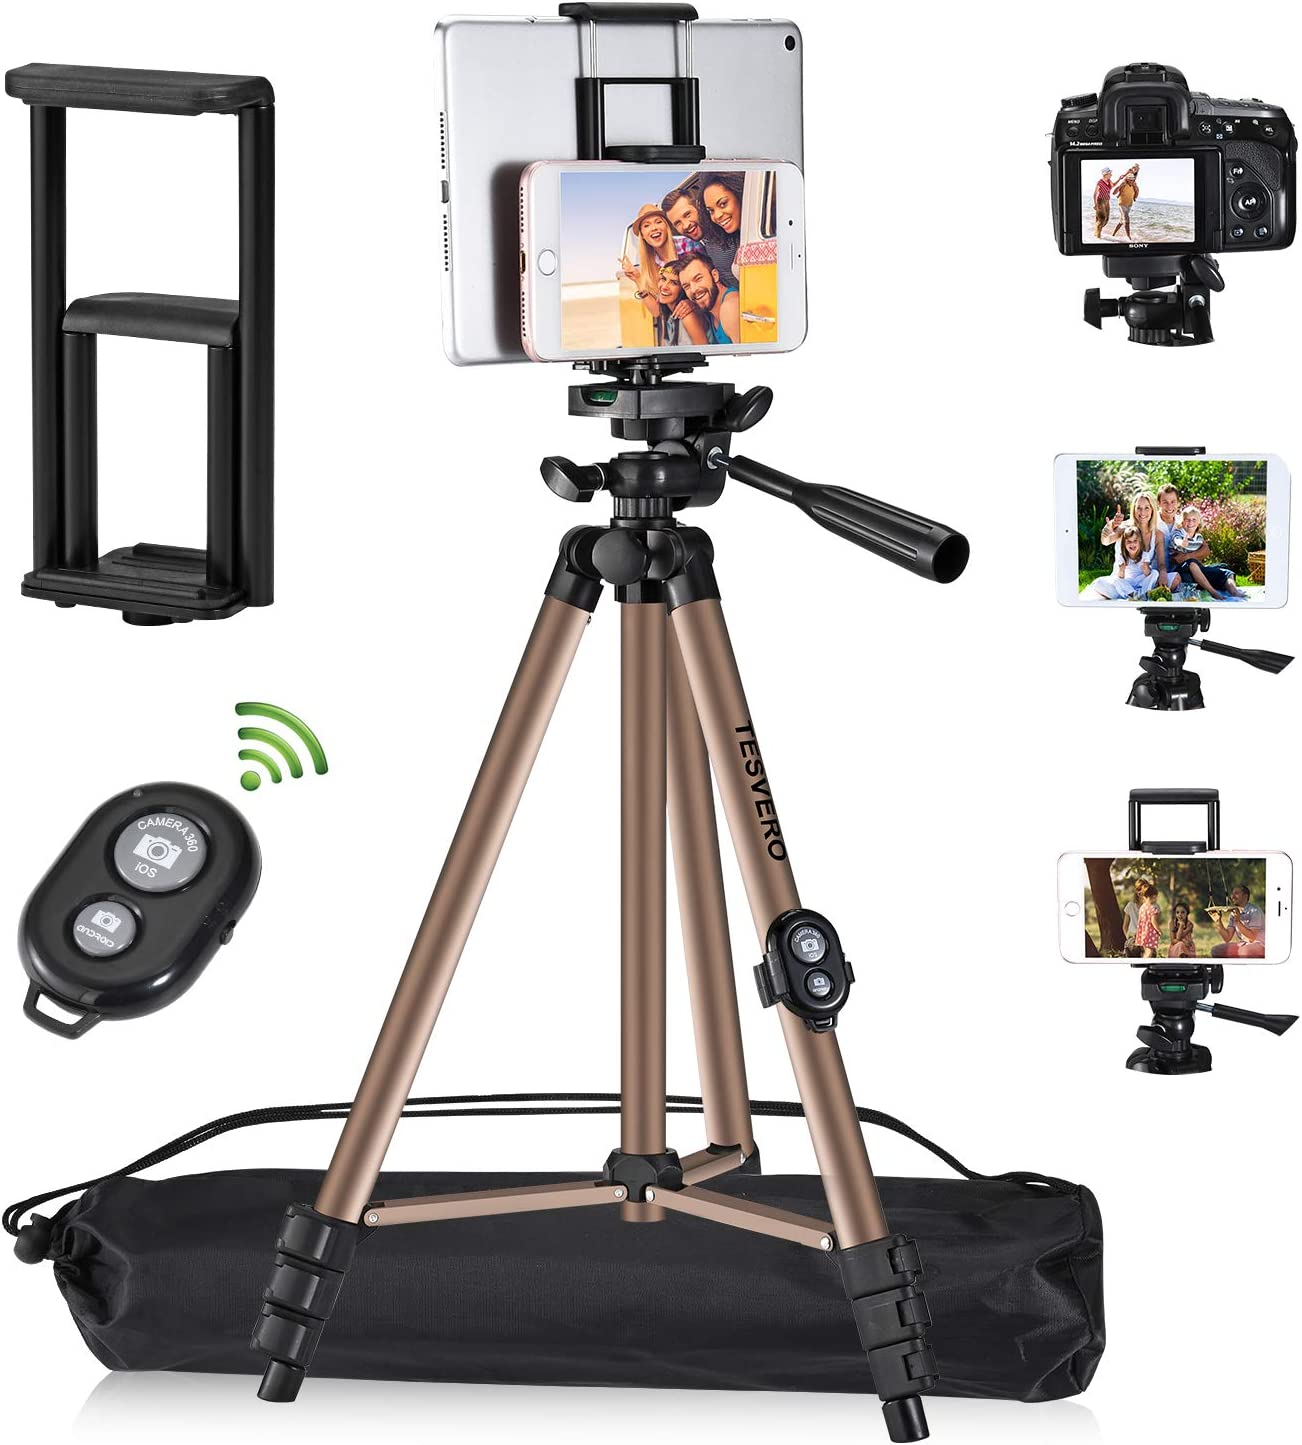 Tripod for iPad iPhone Camera Tablet ,TESVERO 50-inch Aluminum Alloy Tripod + Wireless Remote + 2 in 1 Mount Holder for Smartphone (Width 2.2-3.3